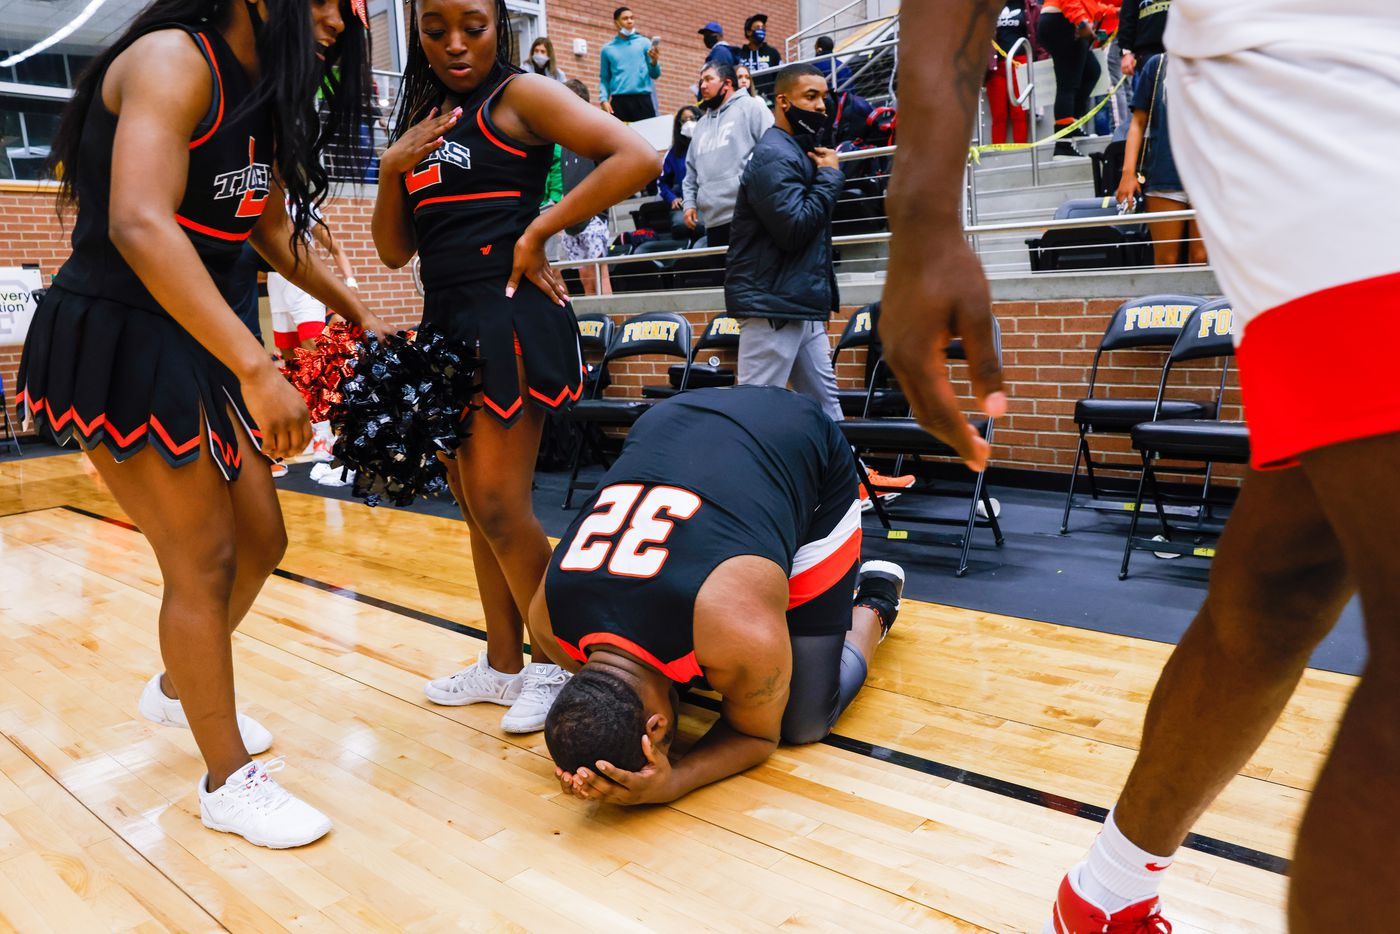 Lancaster's Damon Walker (32) falls to his knees after his team's loss to Kimball following overtime of a boys basketball UIL Class 5A Region II playoff game in Forney on Friday, March 5, 2021. (Juan Figueroa/ The Dallas Morning News)